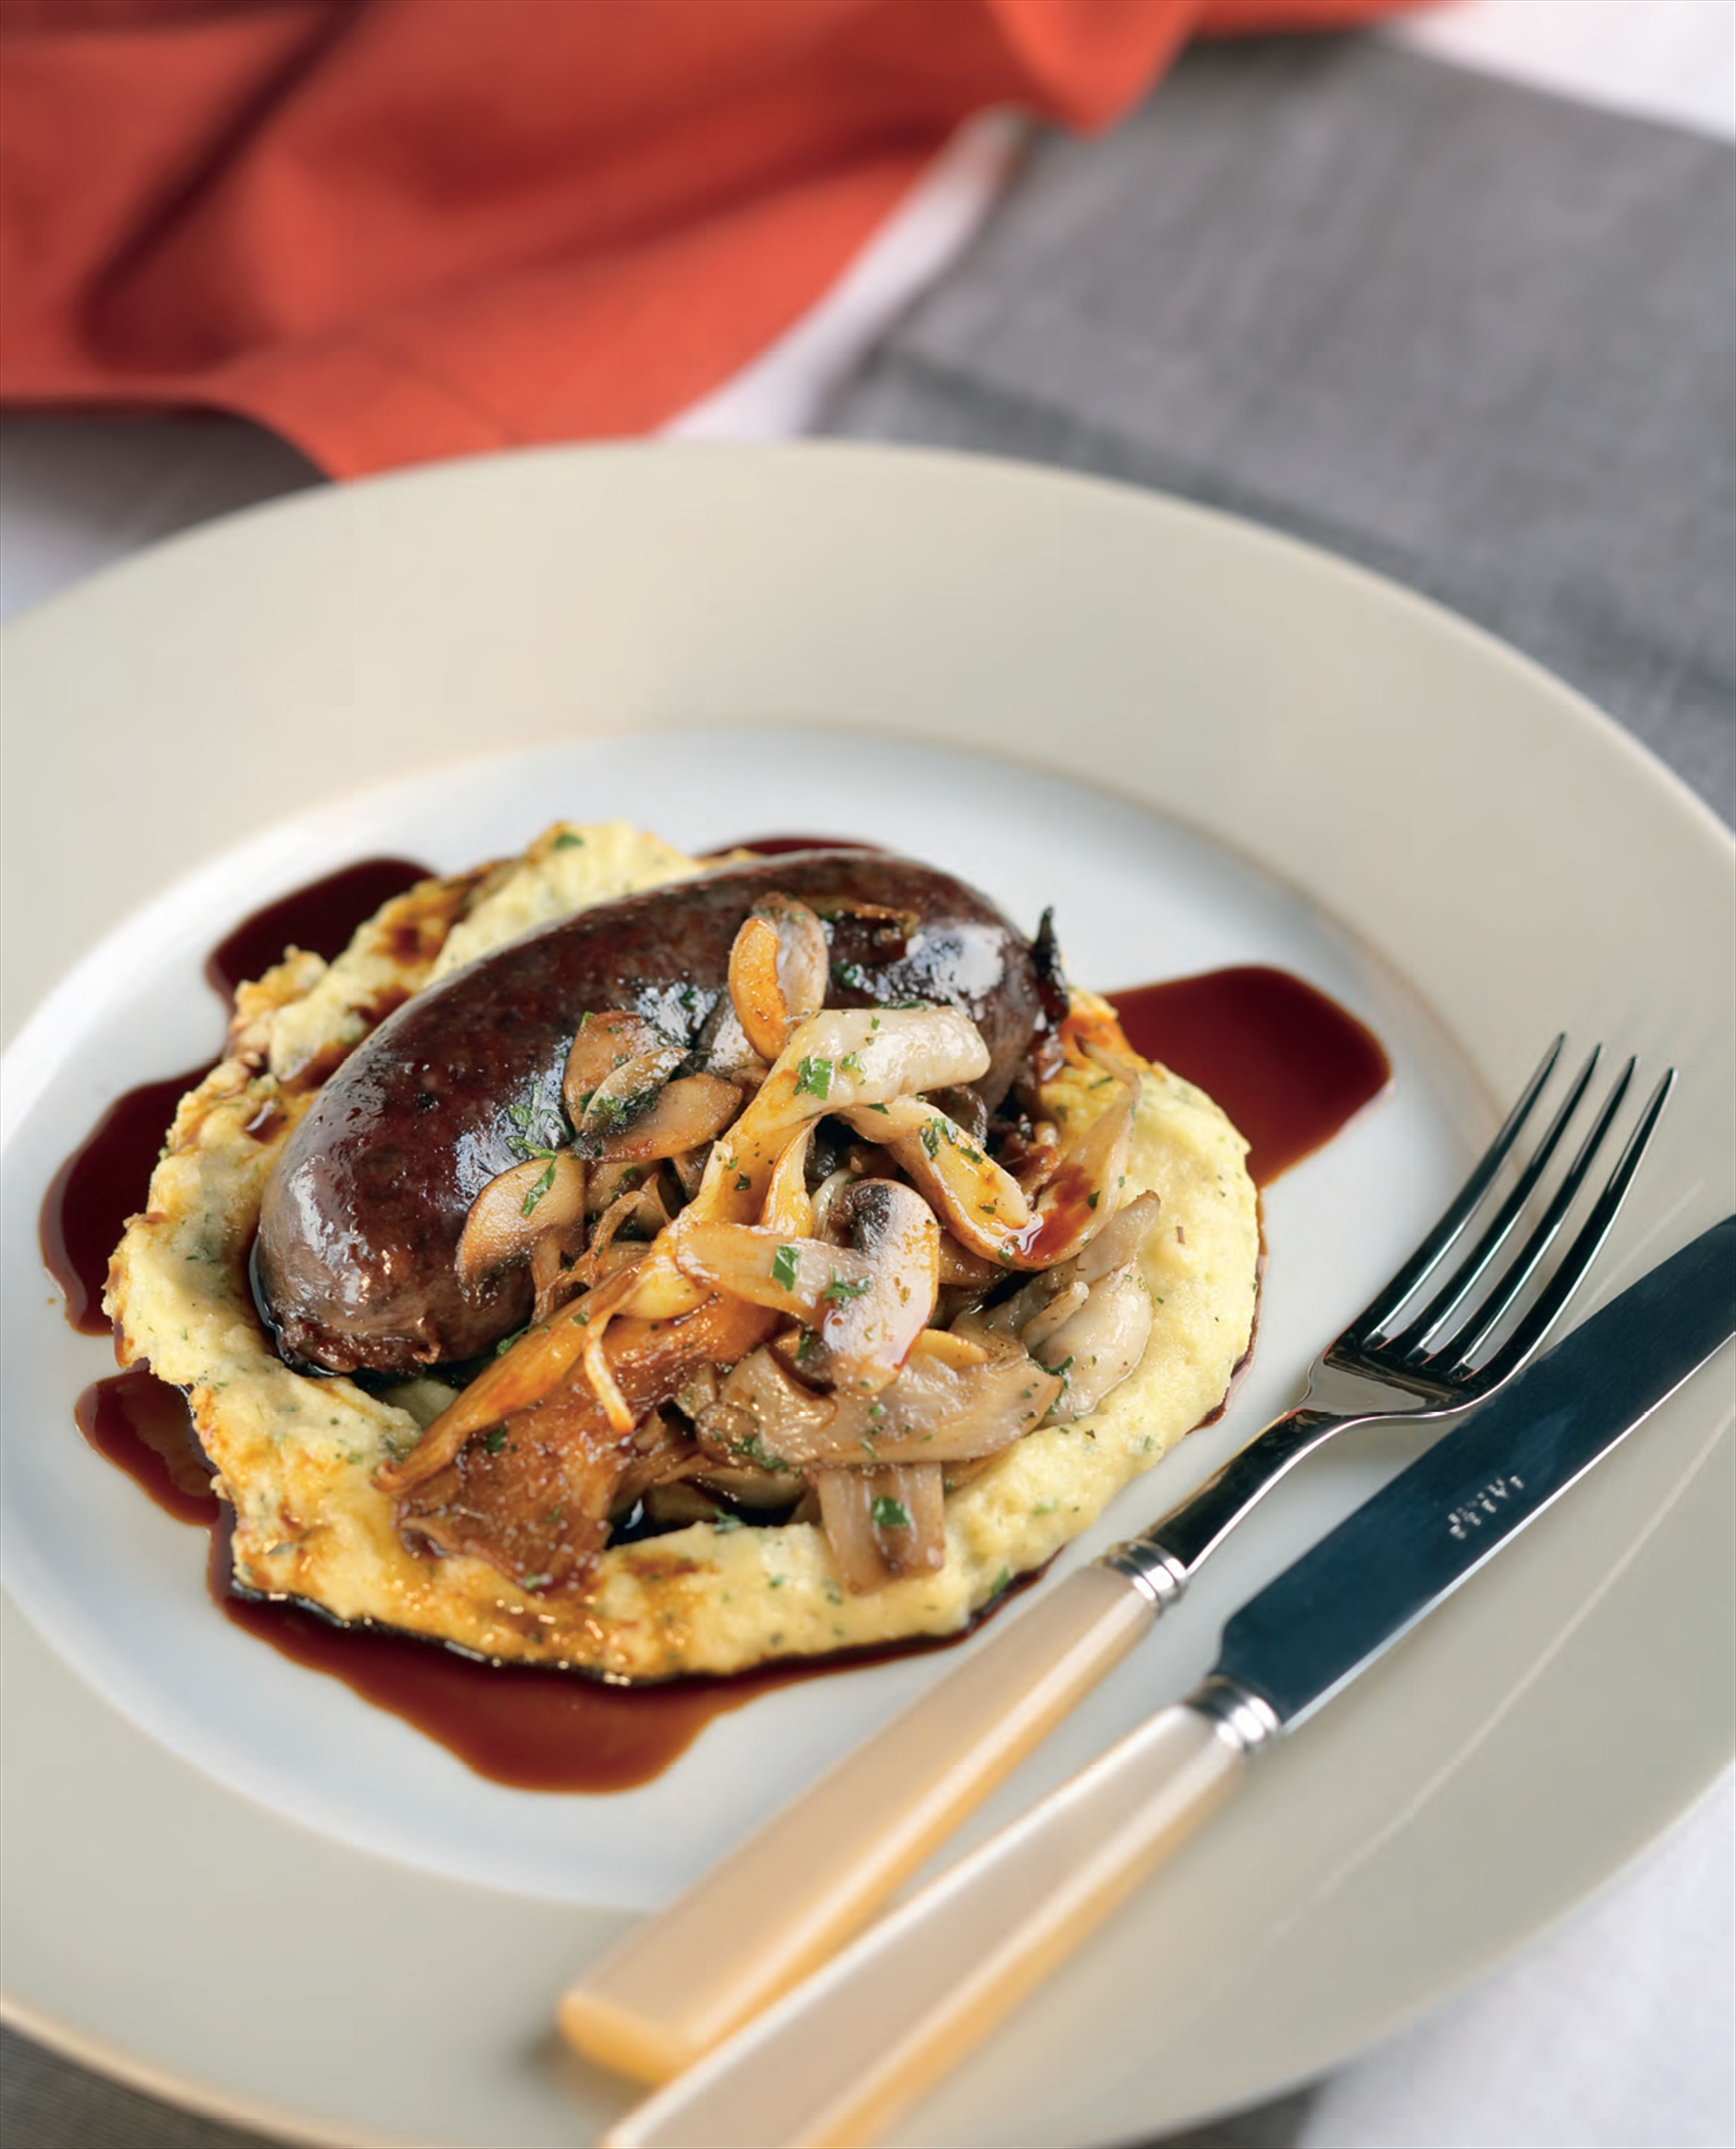 Blood sausage with roasted mushrooms, soft polenta and truffled pecorino